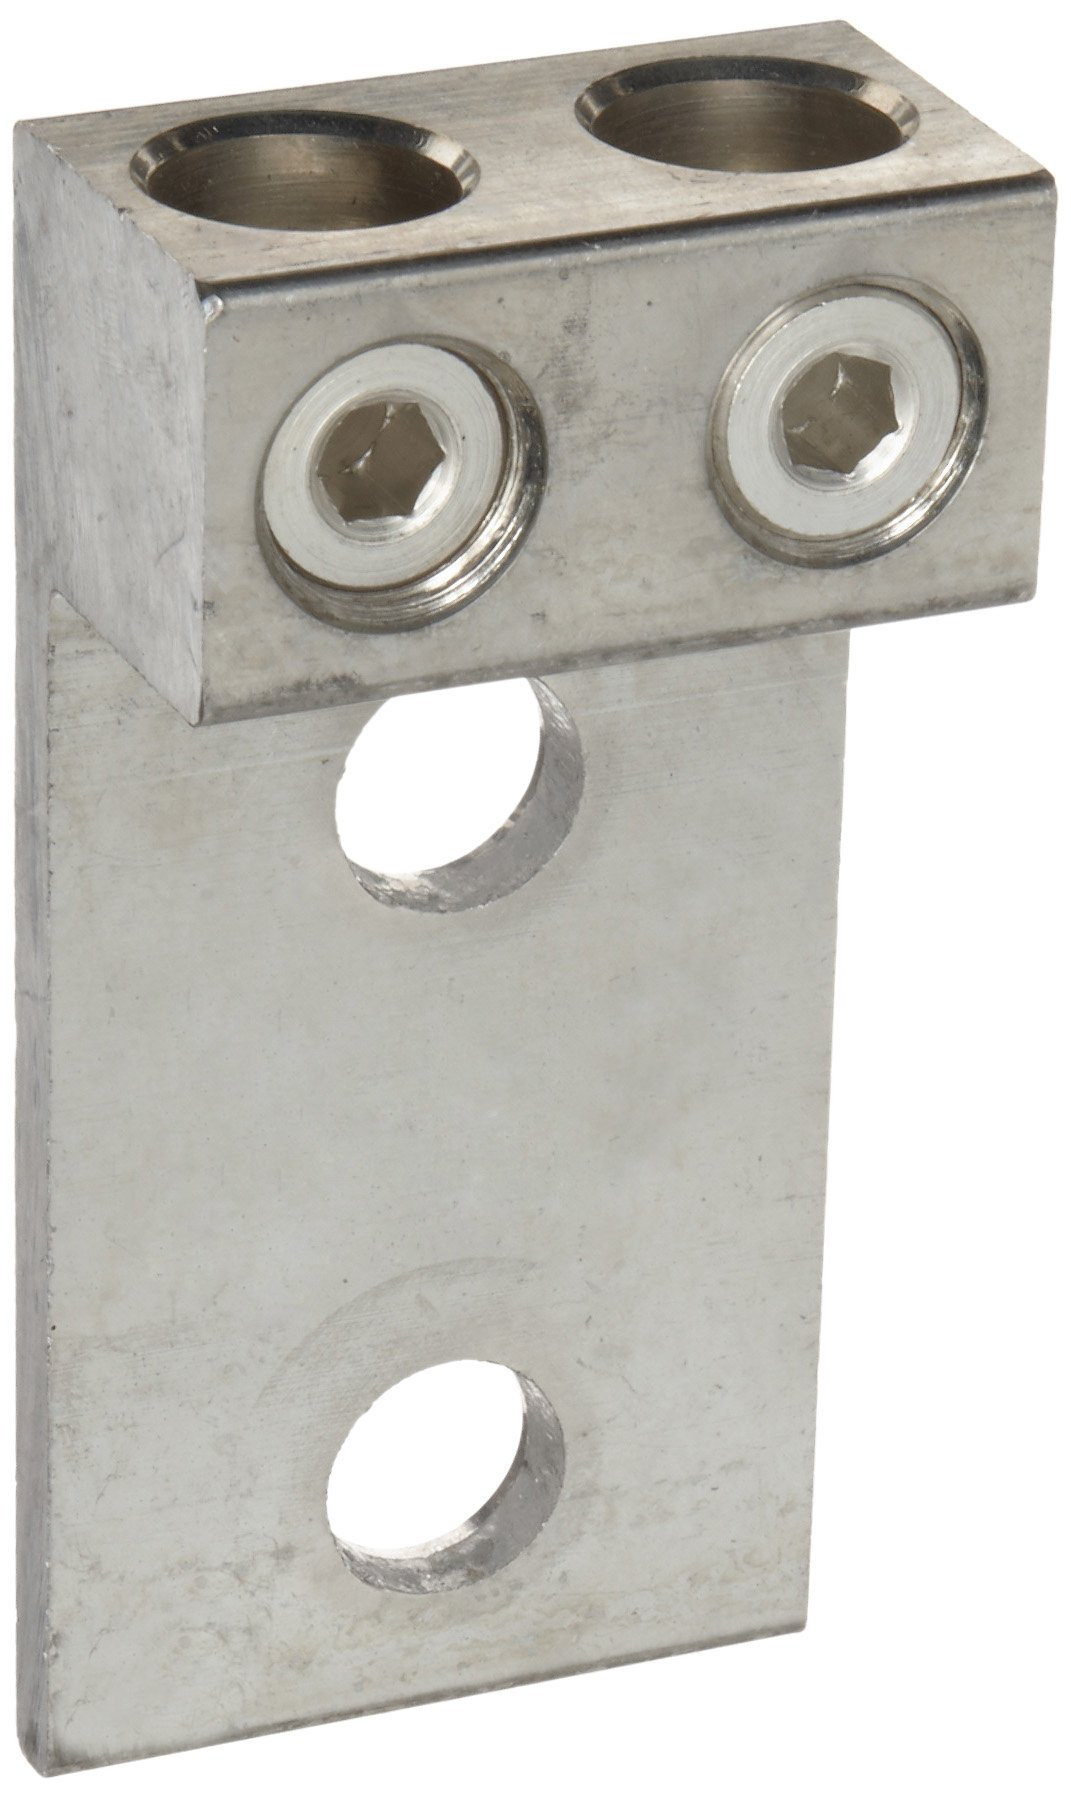 Morris Products 90841 Mechanical Lug, Two Conductors, Two Hole Mount, Aluminum, 300 AWG, 300mcm - 6SOL. Wire Range